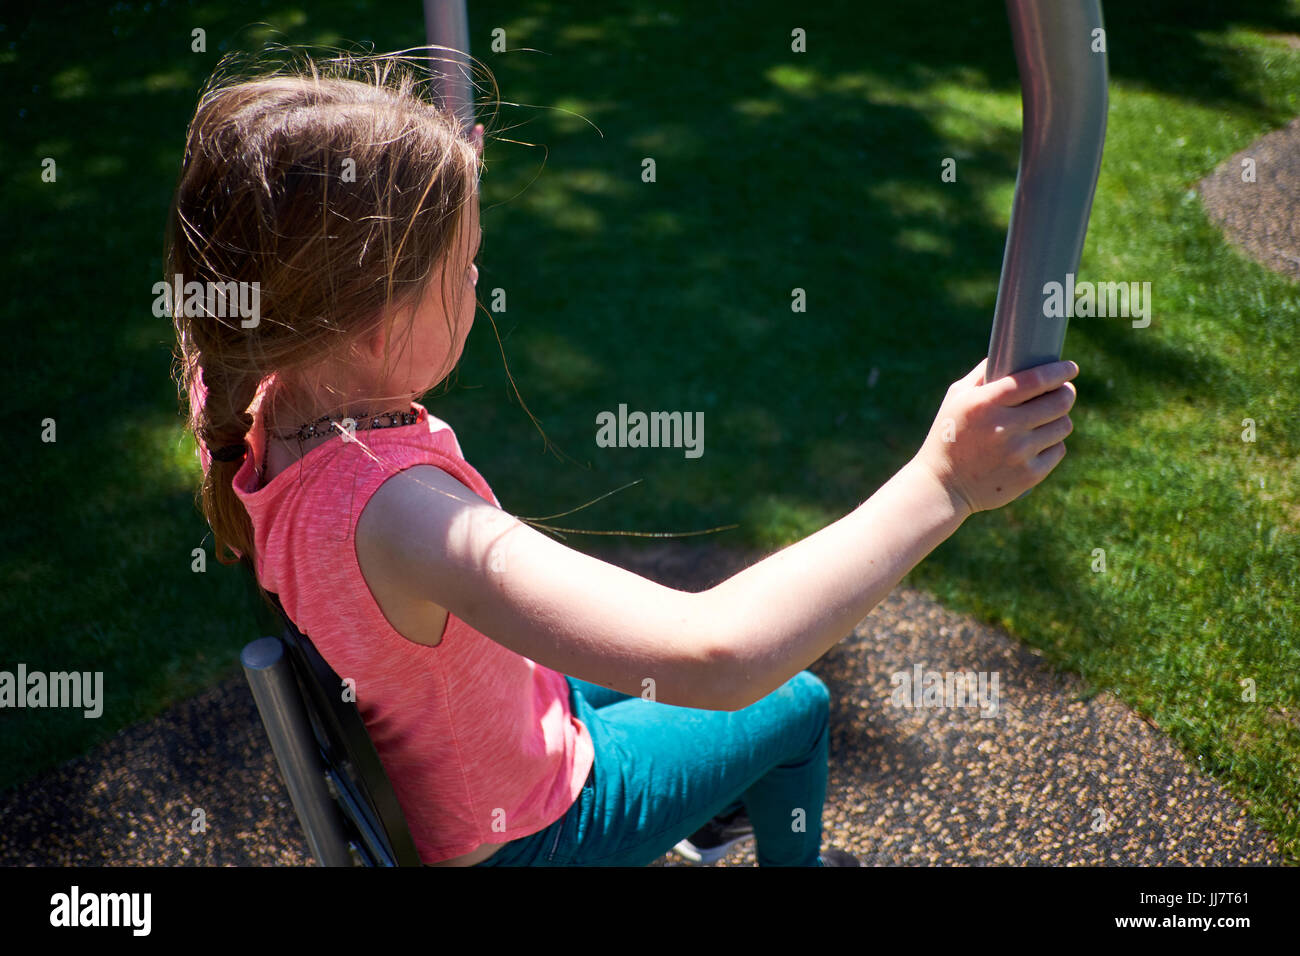 A young girl uses outdoor exercise equipment to exercise in a park on a sunny day - Stock Image